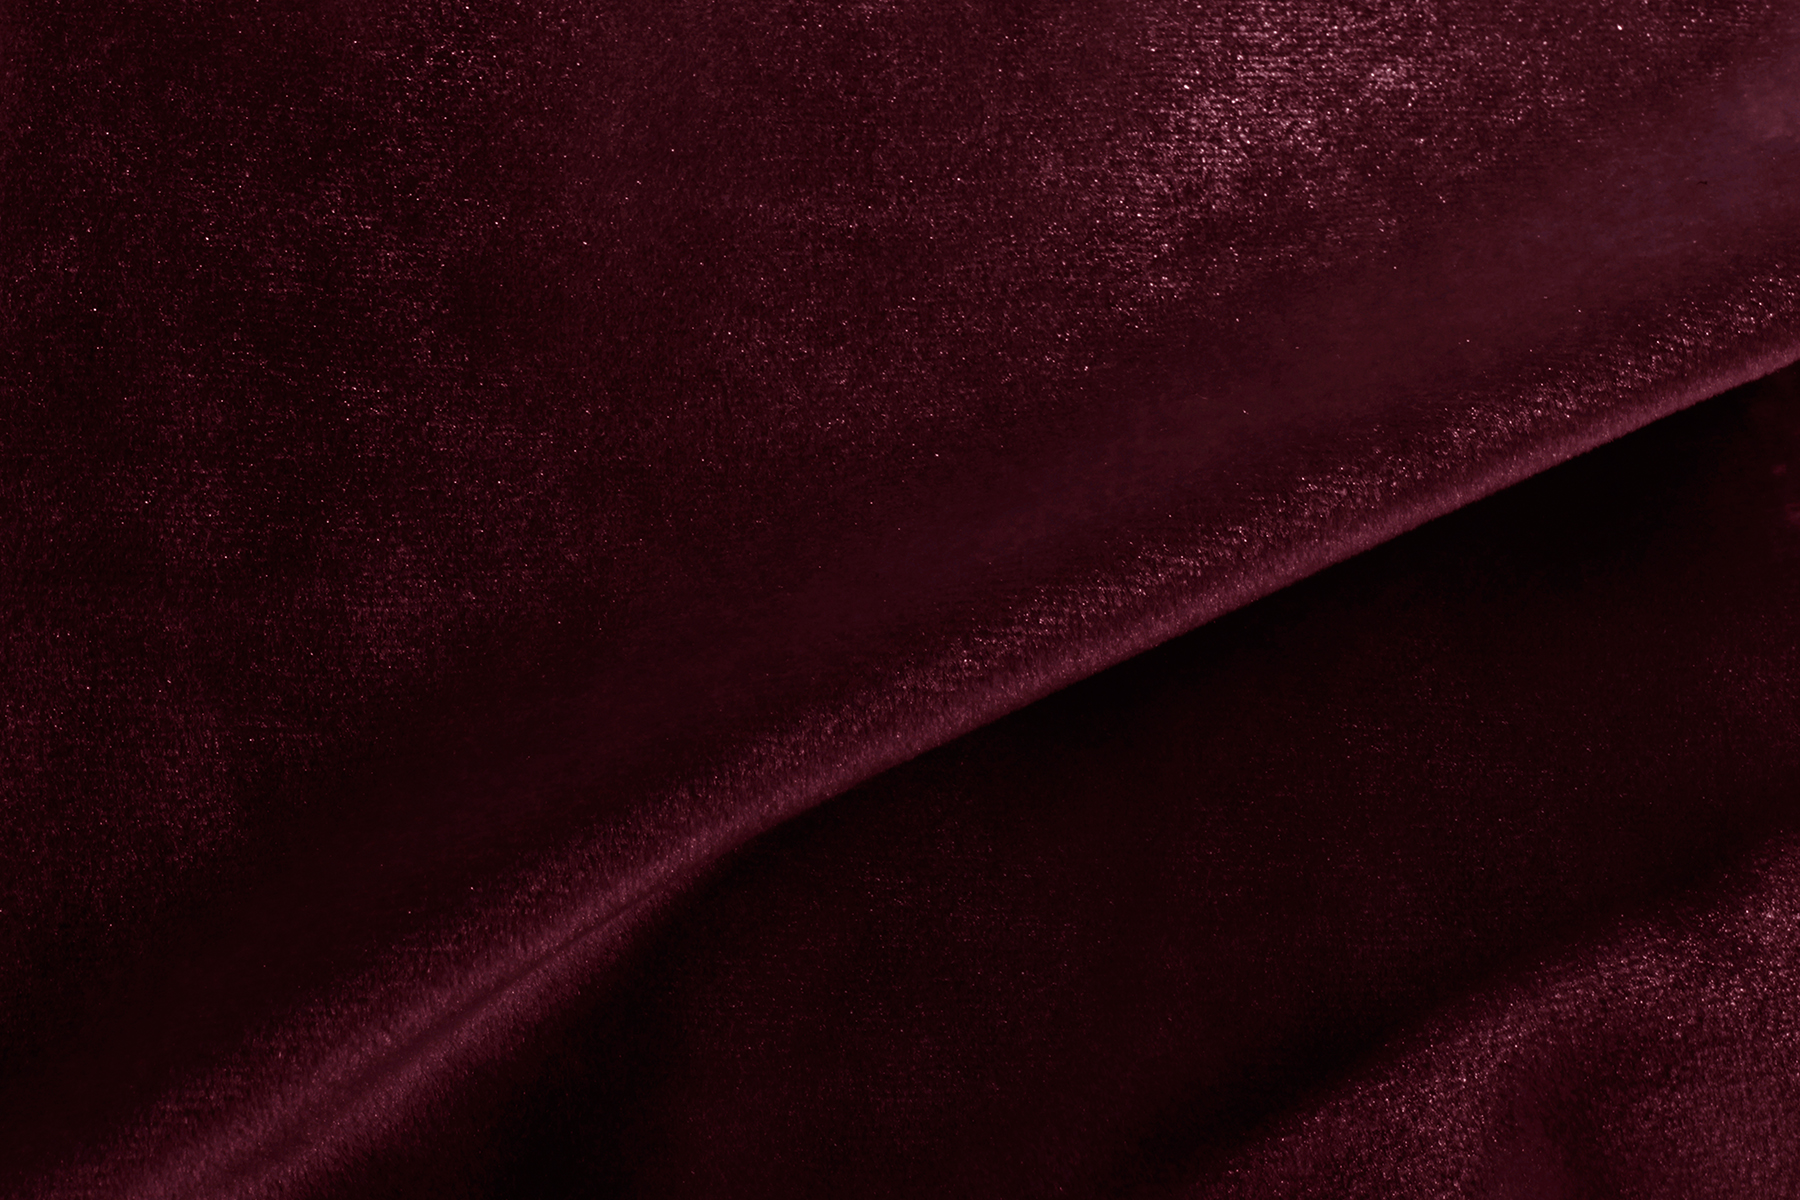 SILKY VELVET 432 Fabric by KOKET